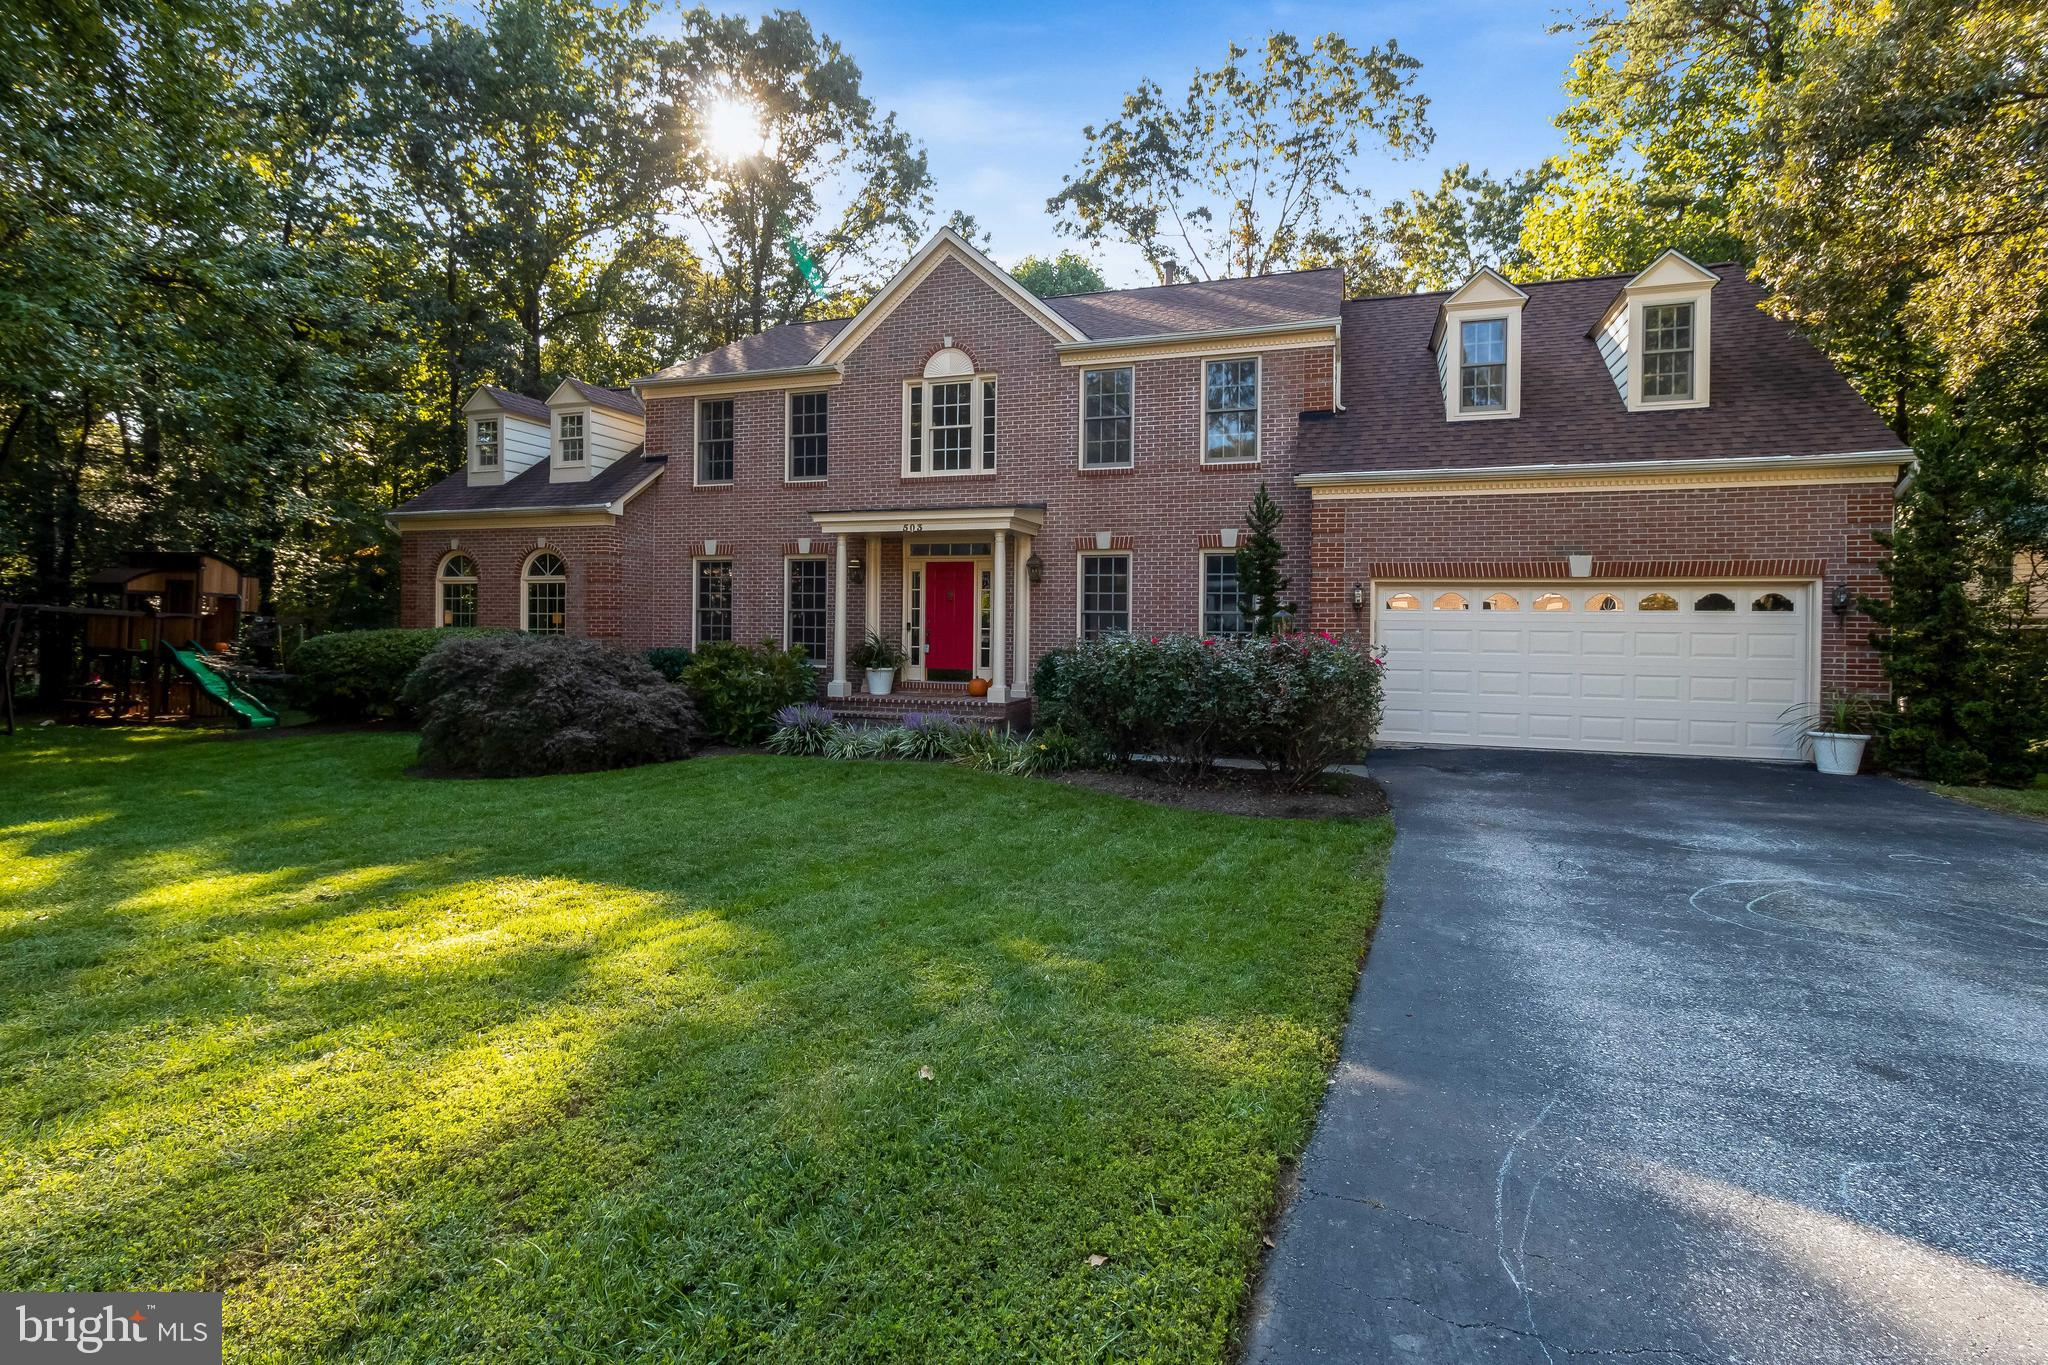 503 Pinefield Drive, Severna Park, MD 21146